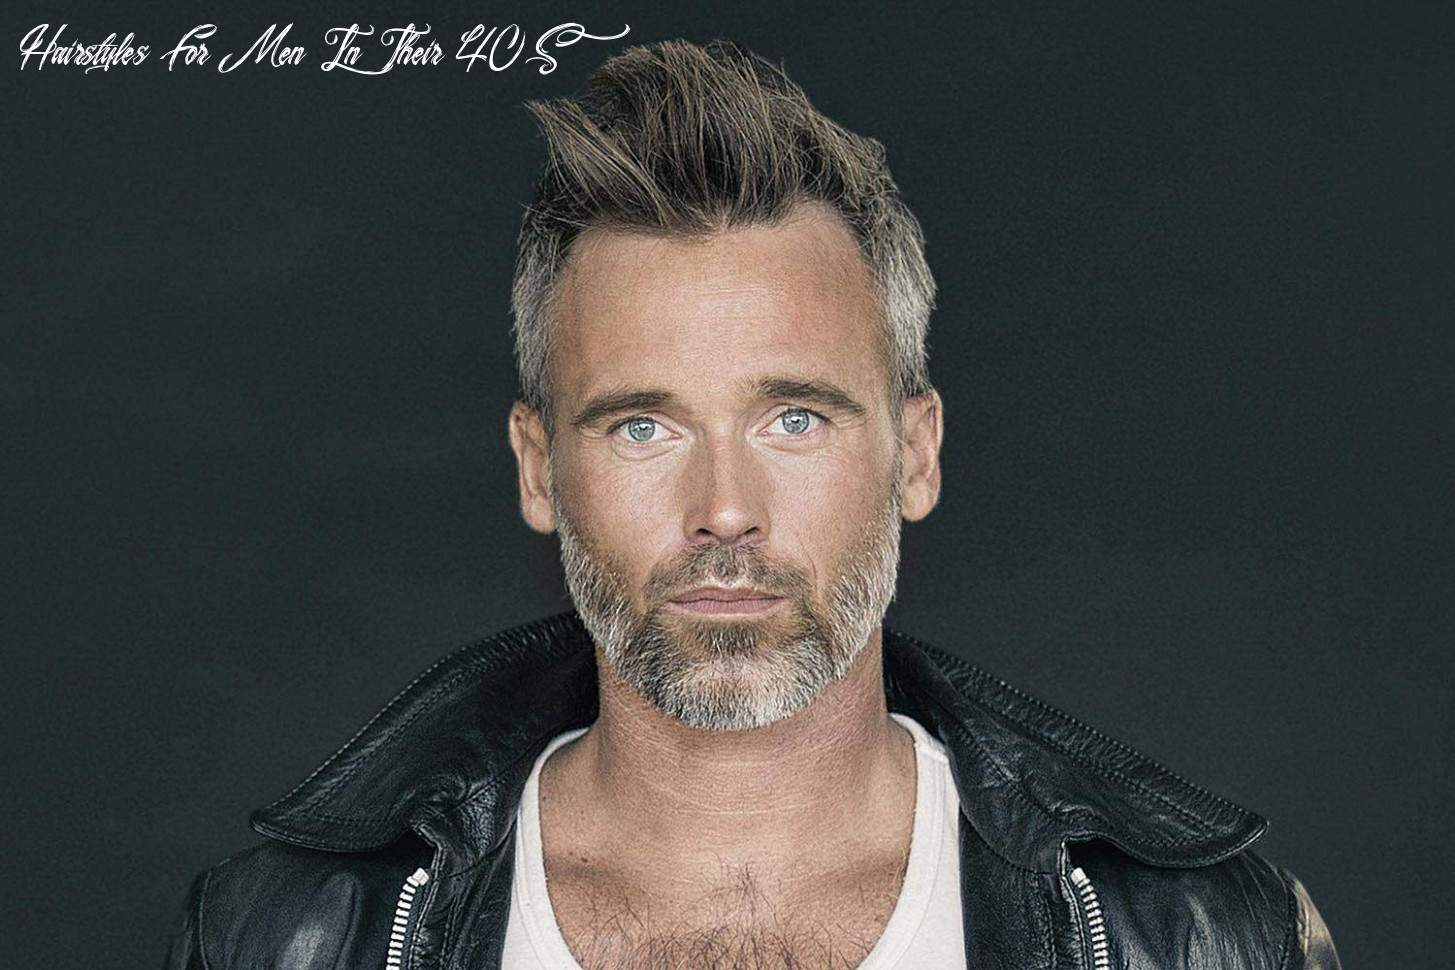 Stylish haircuts for the masculine in their 10s hairstyles for men in their 40s